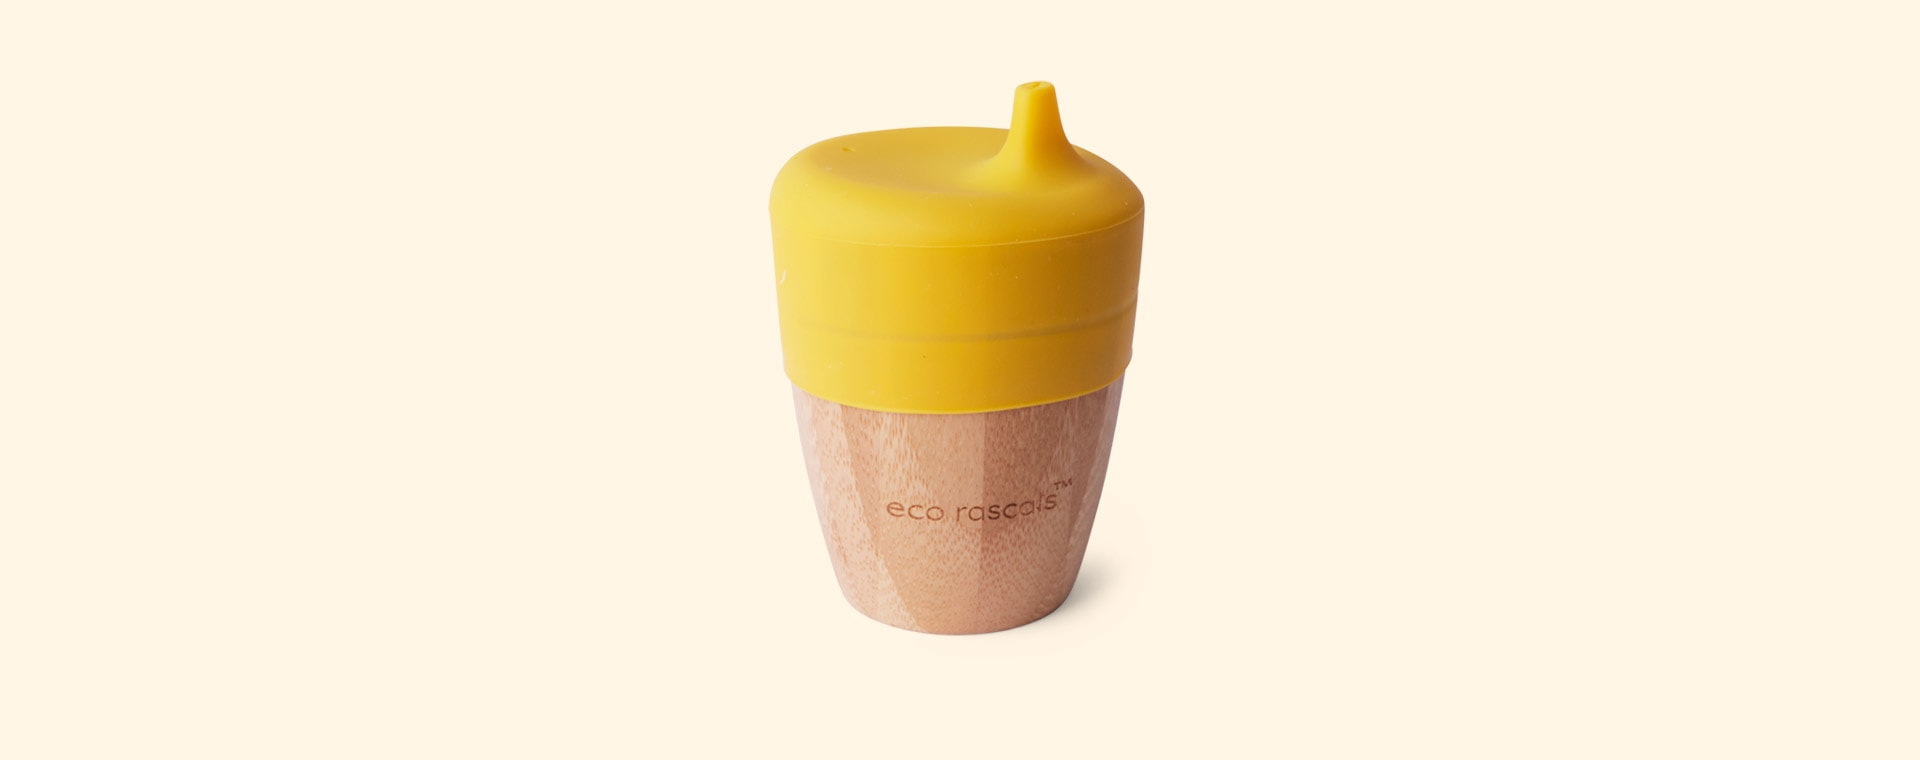 Yellow eco rascals Small Cup & Sippy Topper